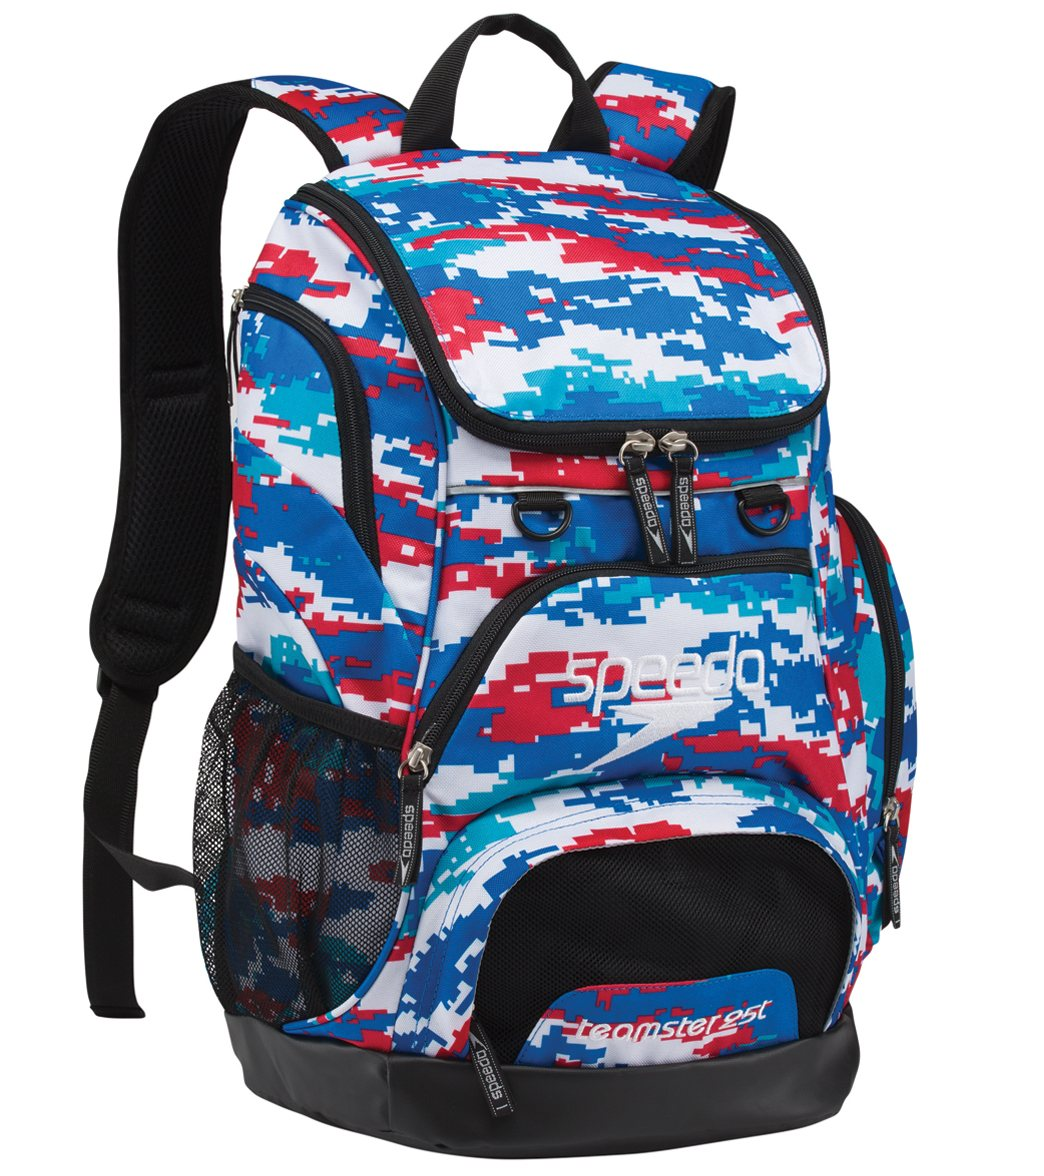 798a8712de11 Speedo Medium 25L Teamster Backpack at SwimOutlet.com - Free Shipping